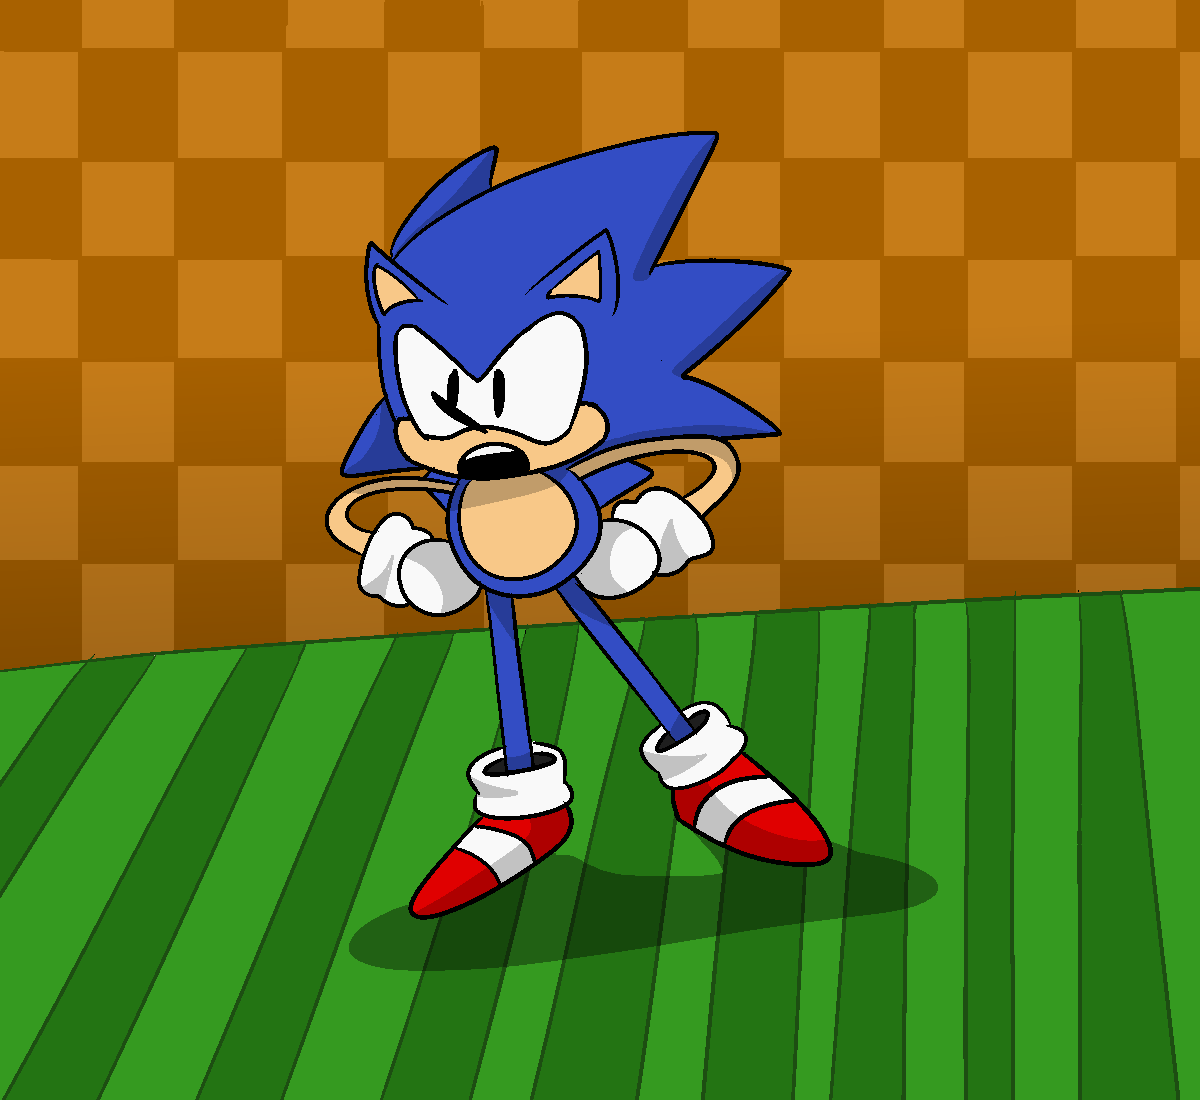 Who'da guessed, It's Sonic!